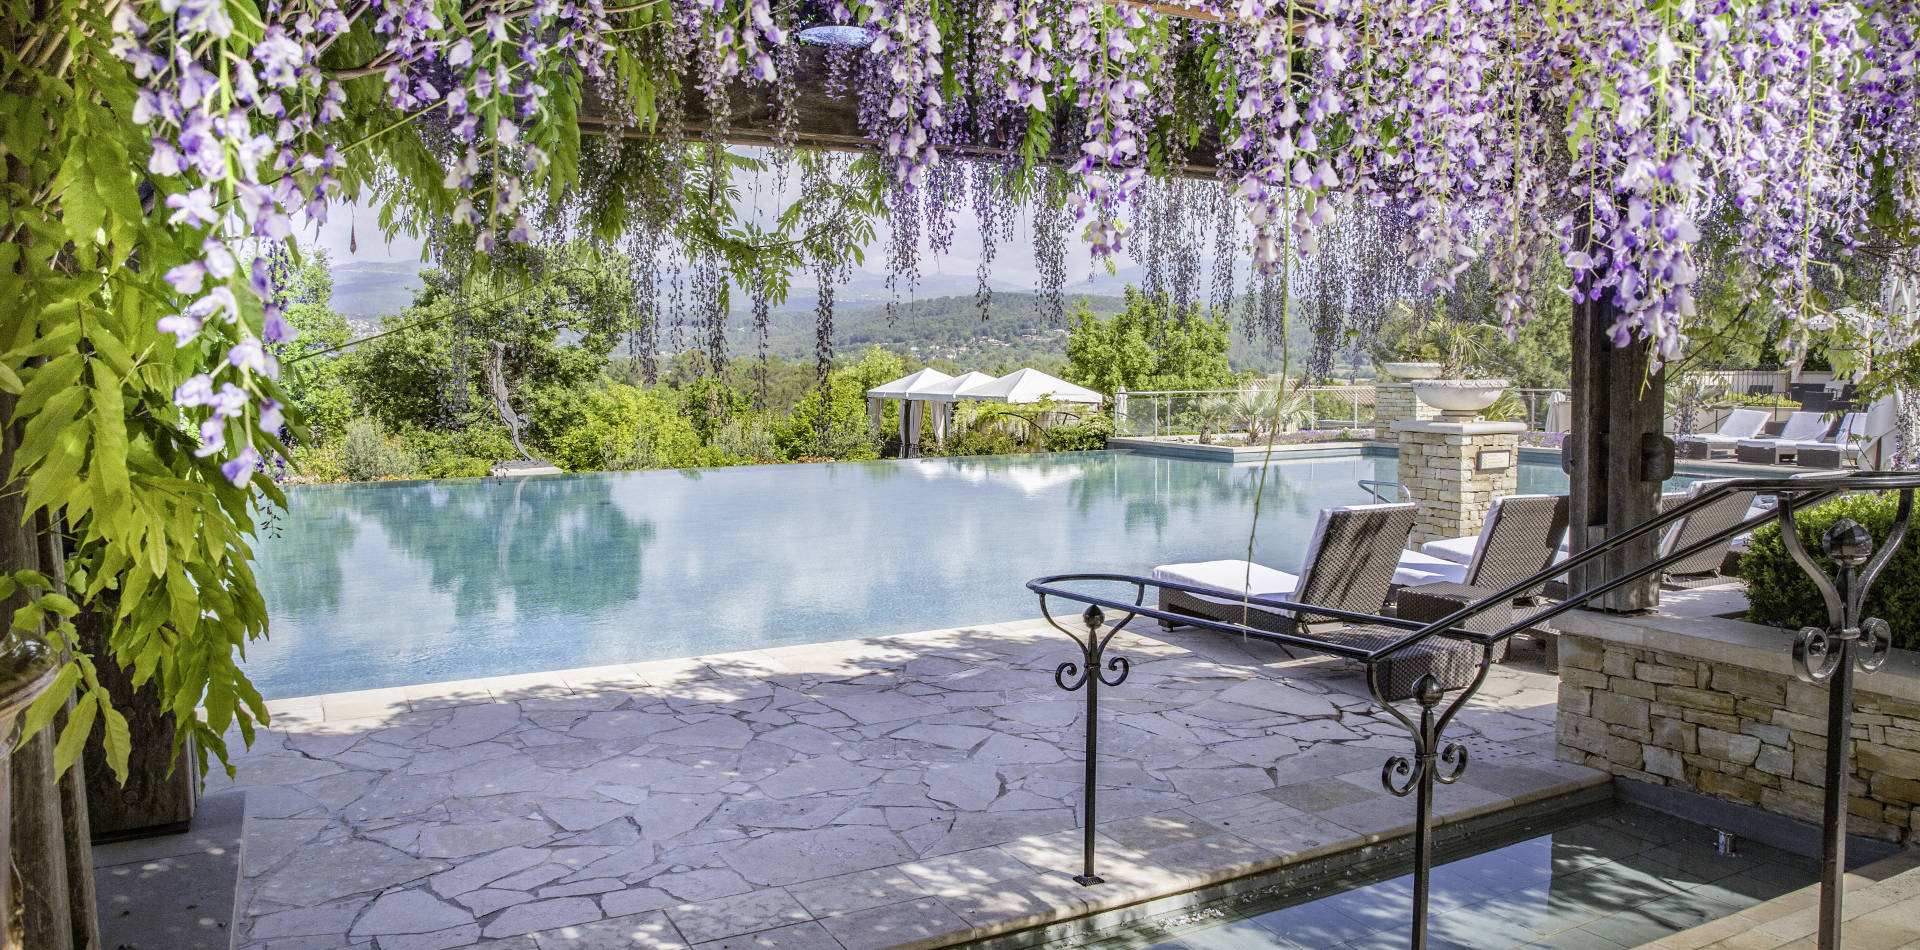 Luxushotel in Frankreich - Terre Blanche Hotel Golf Spa Resort